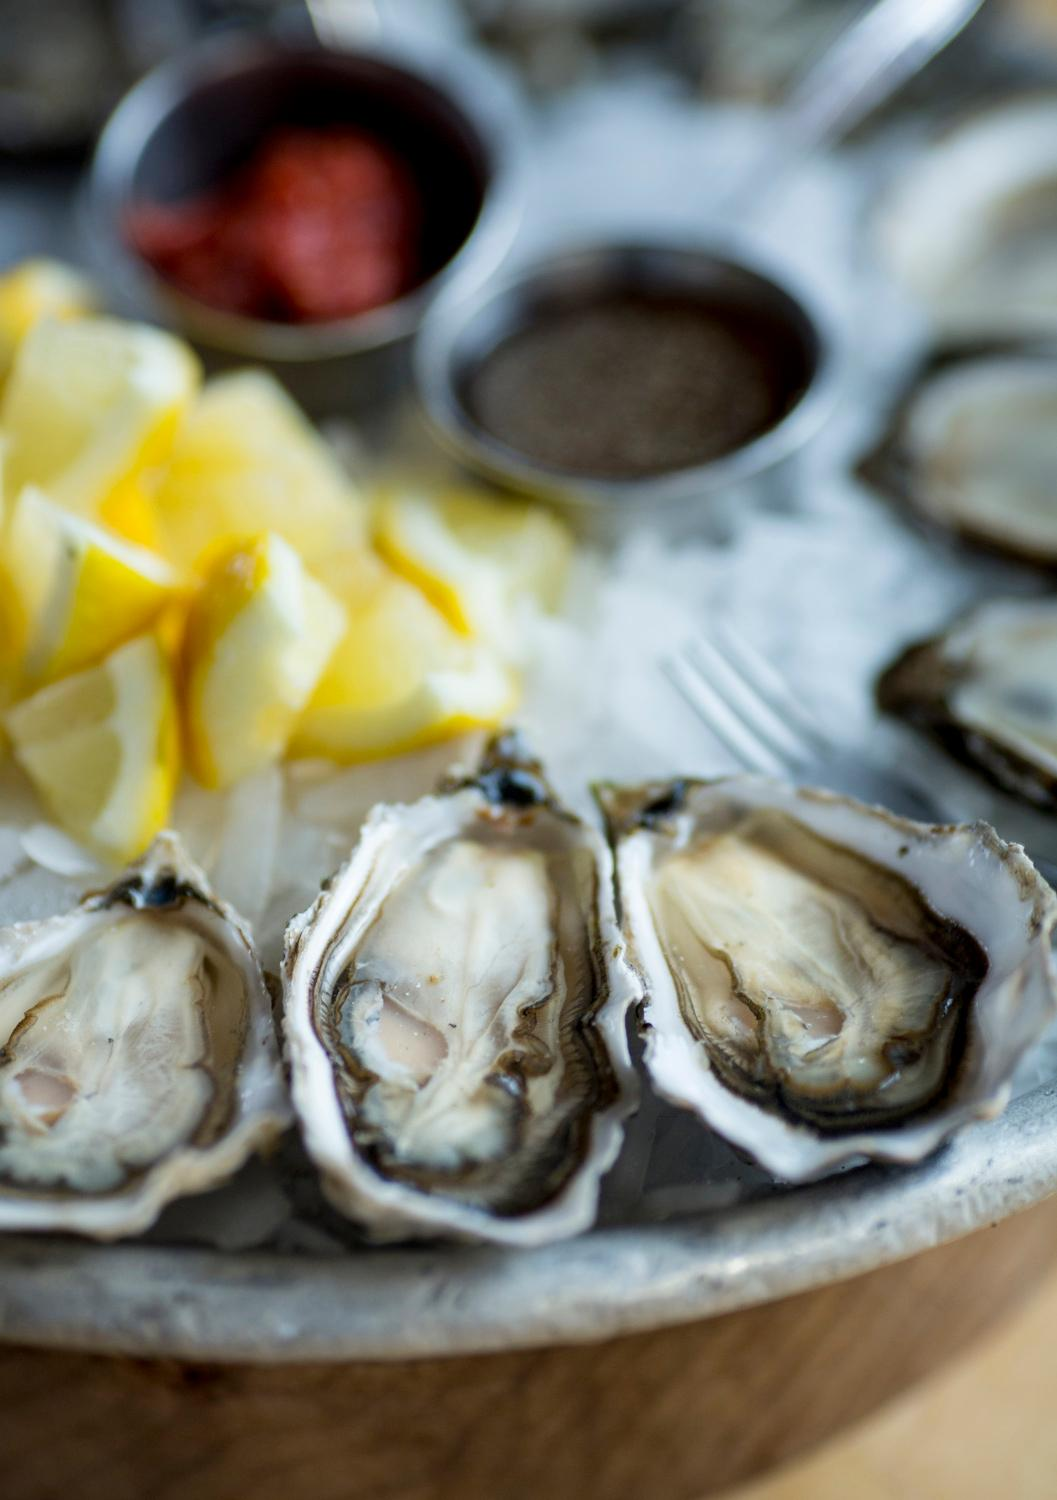 The Kumamoto oysters freshly shucked at Taylor Shellfish's retail shop overlooking Samish Bay, located at 2182 Chuckanut Dr, in Bow, Washington. You can try the tasty oysters at one of their oyster bars located in Queen Anne, Capitol Hill, Pioneer Square, or Bellevue. (Sy Bean / Seattle Refined)